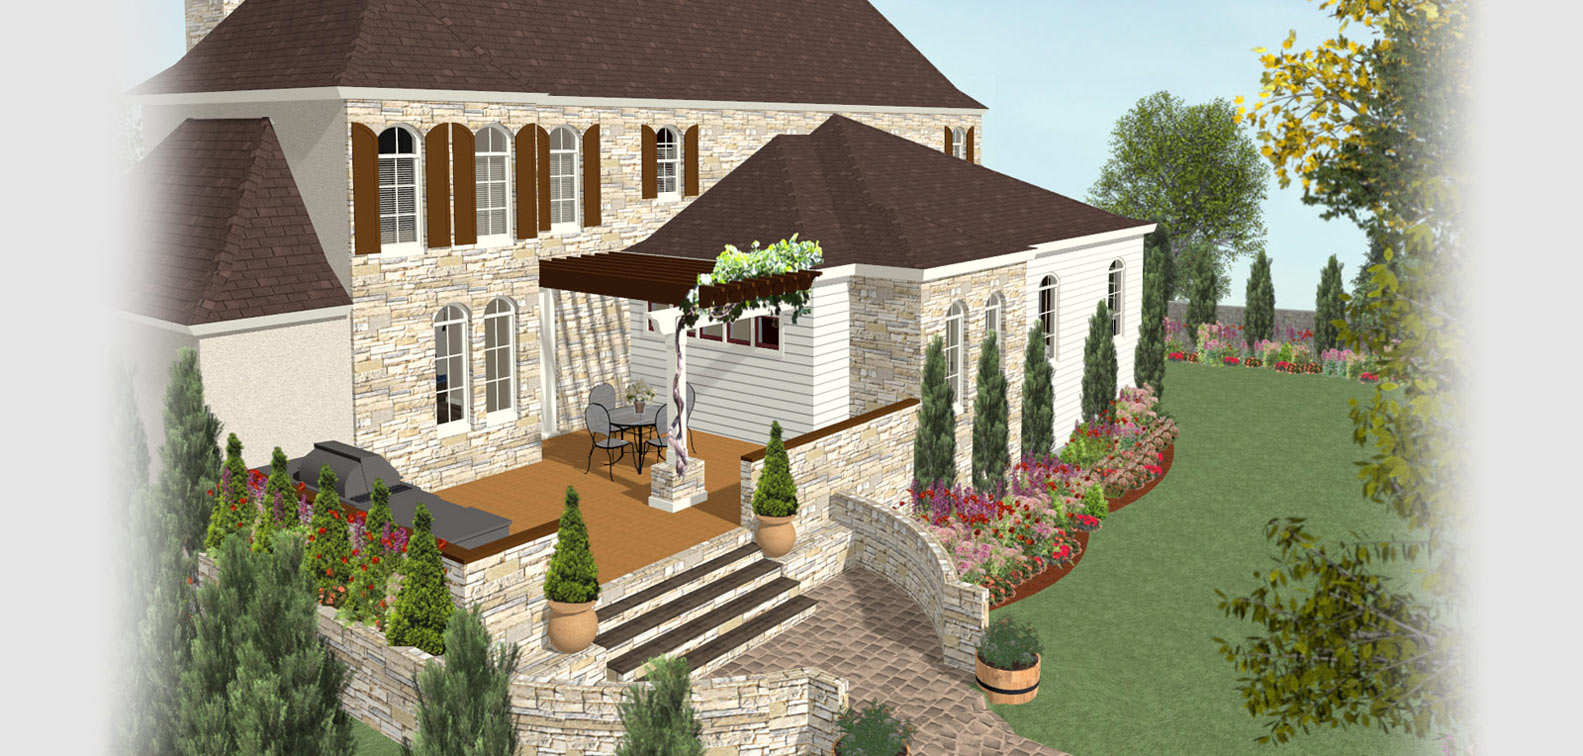 Home Designer Software For Deck And Landscape Software Projects - Computer program for backyard design